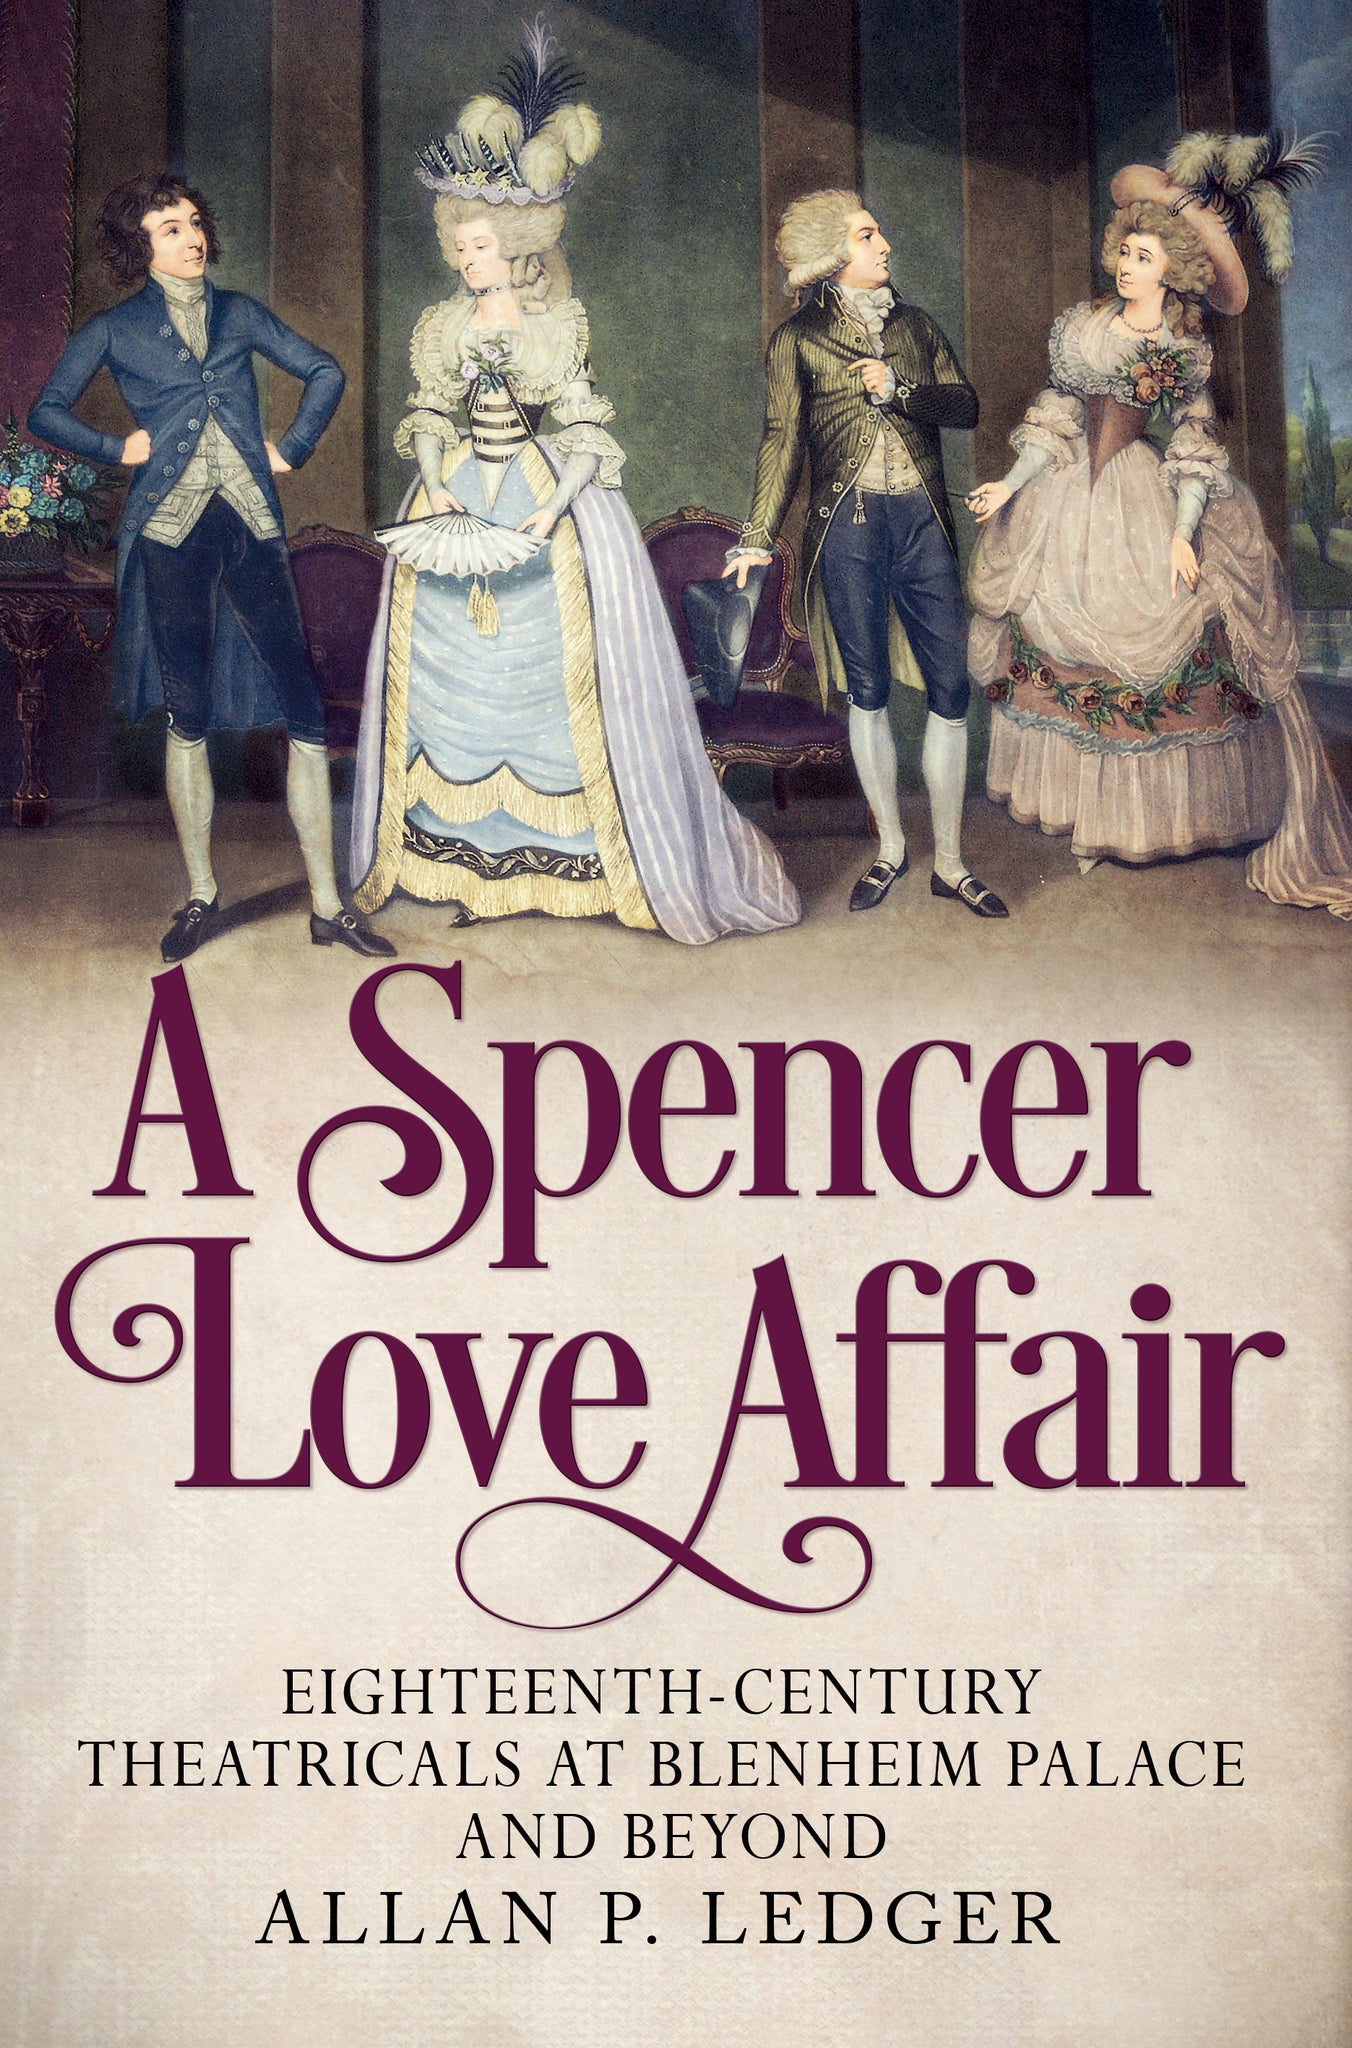 A Spencer Love Affair: Eighteen Century Theatricals at Blenheim Palace - available now from Fonthill Media